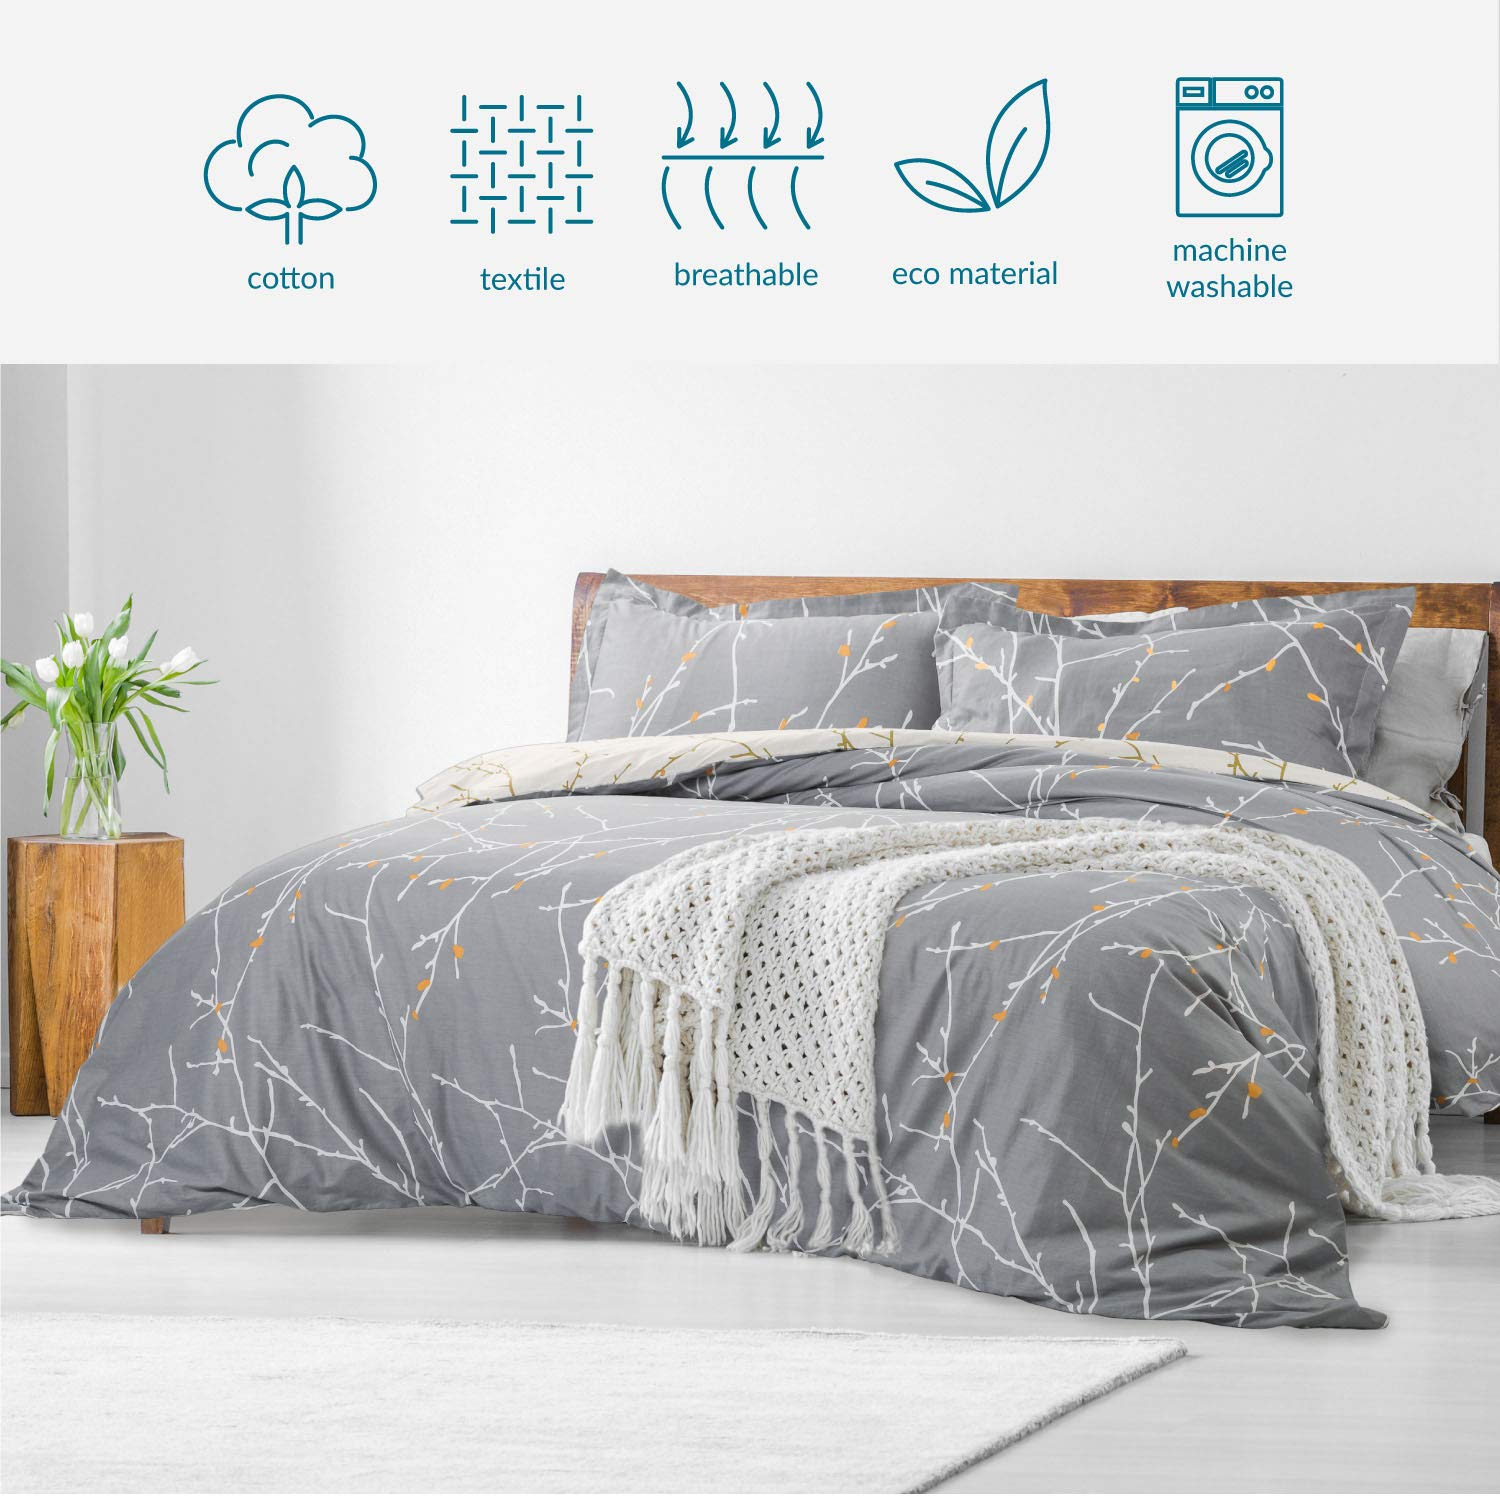 Bedsure 100% Cotton Duvet Cover Set Full Queen Size Grey/Ivory Reversible Comforter Cover Tree Branch Bedding Sets (1 Duvet Cover + 2 Pillow Shams) by Bedsure (Image #7)